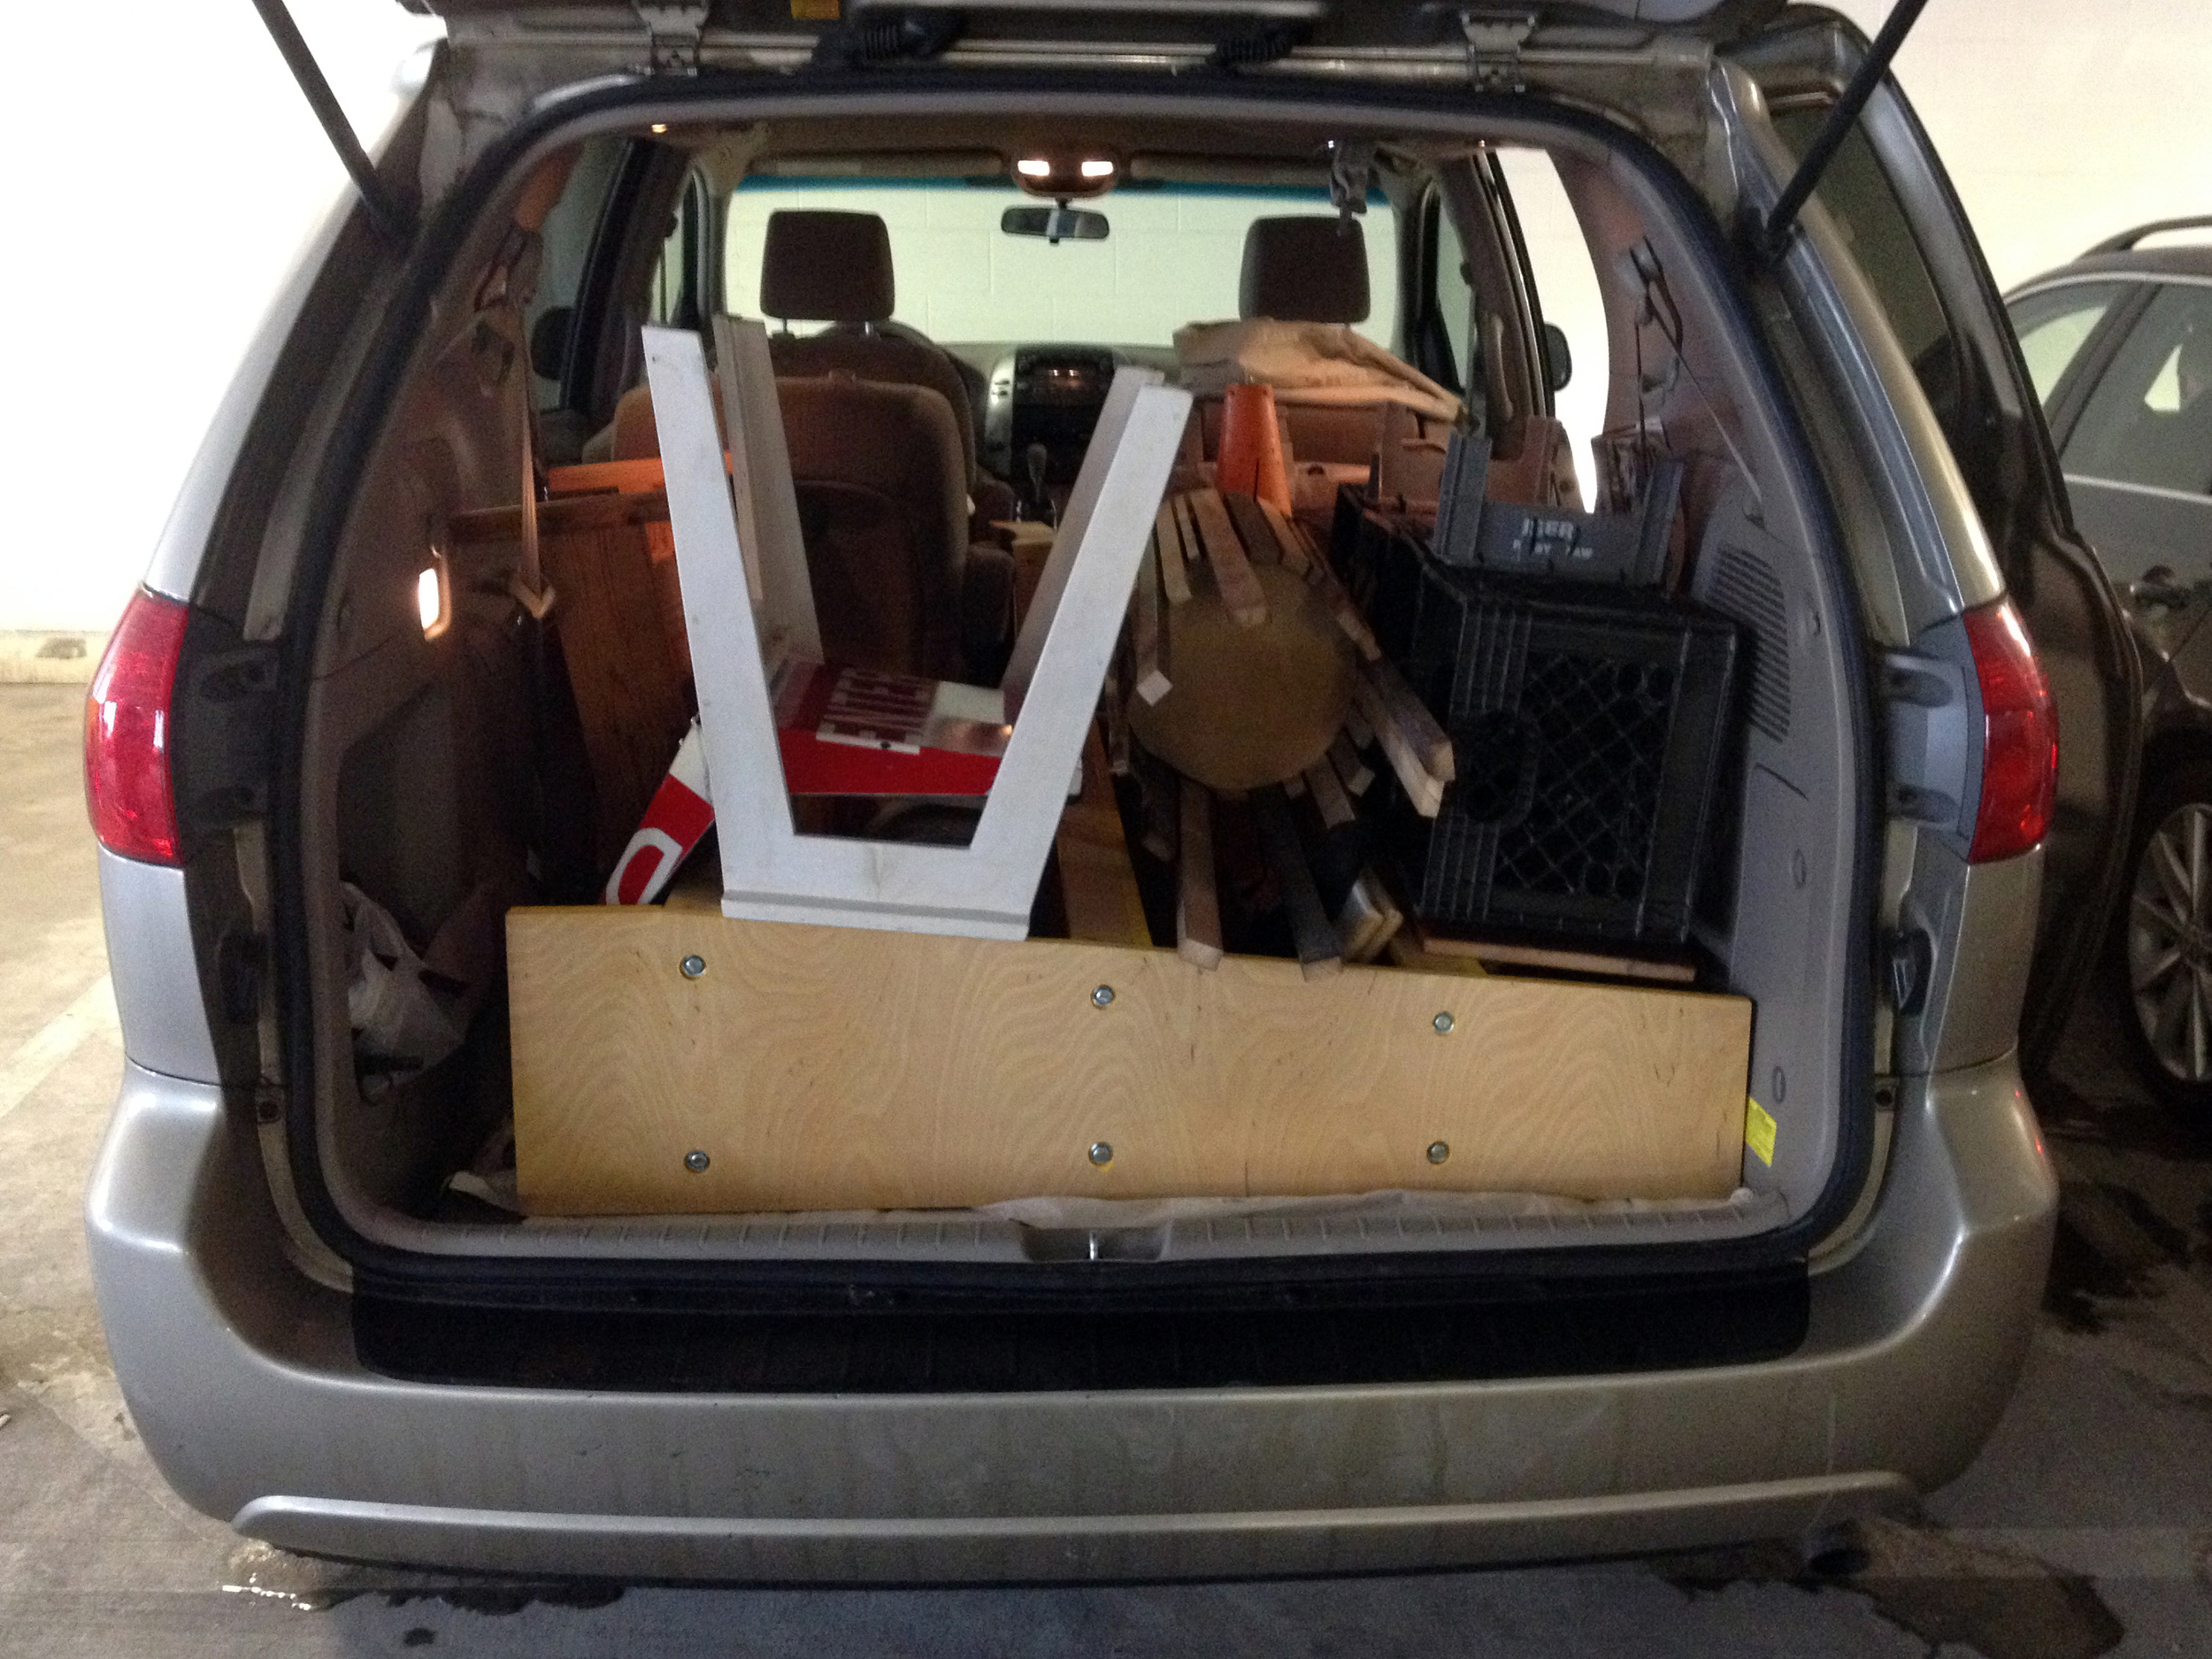 Four borrowed-minivan-loads . . .